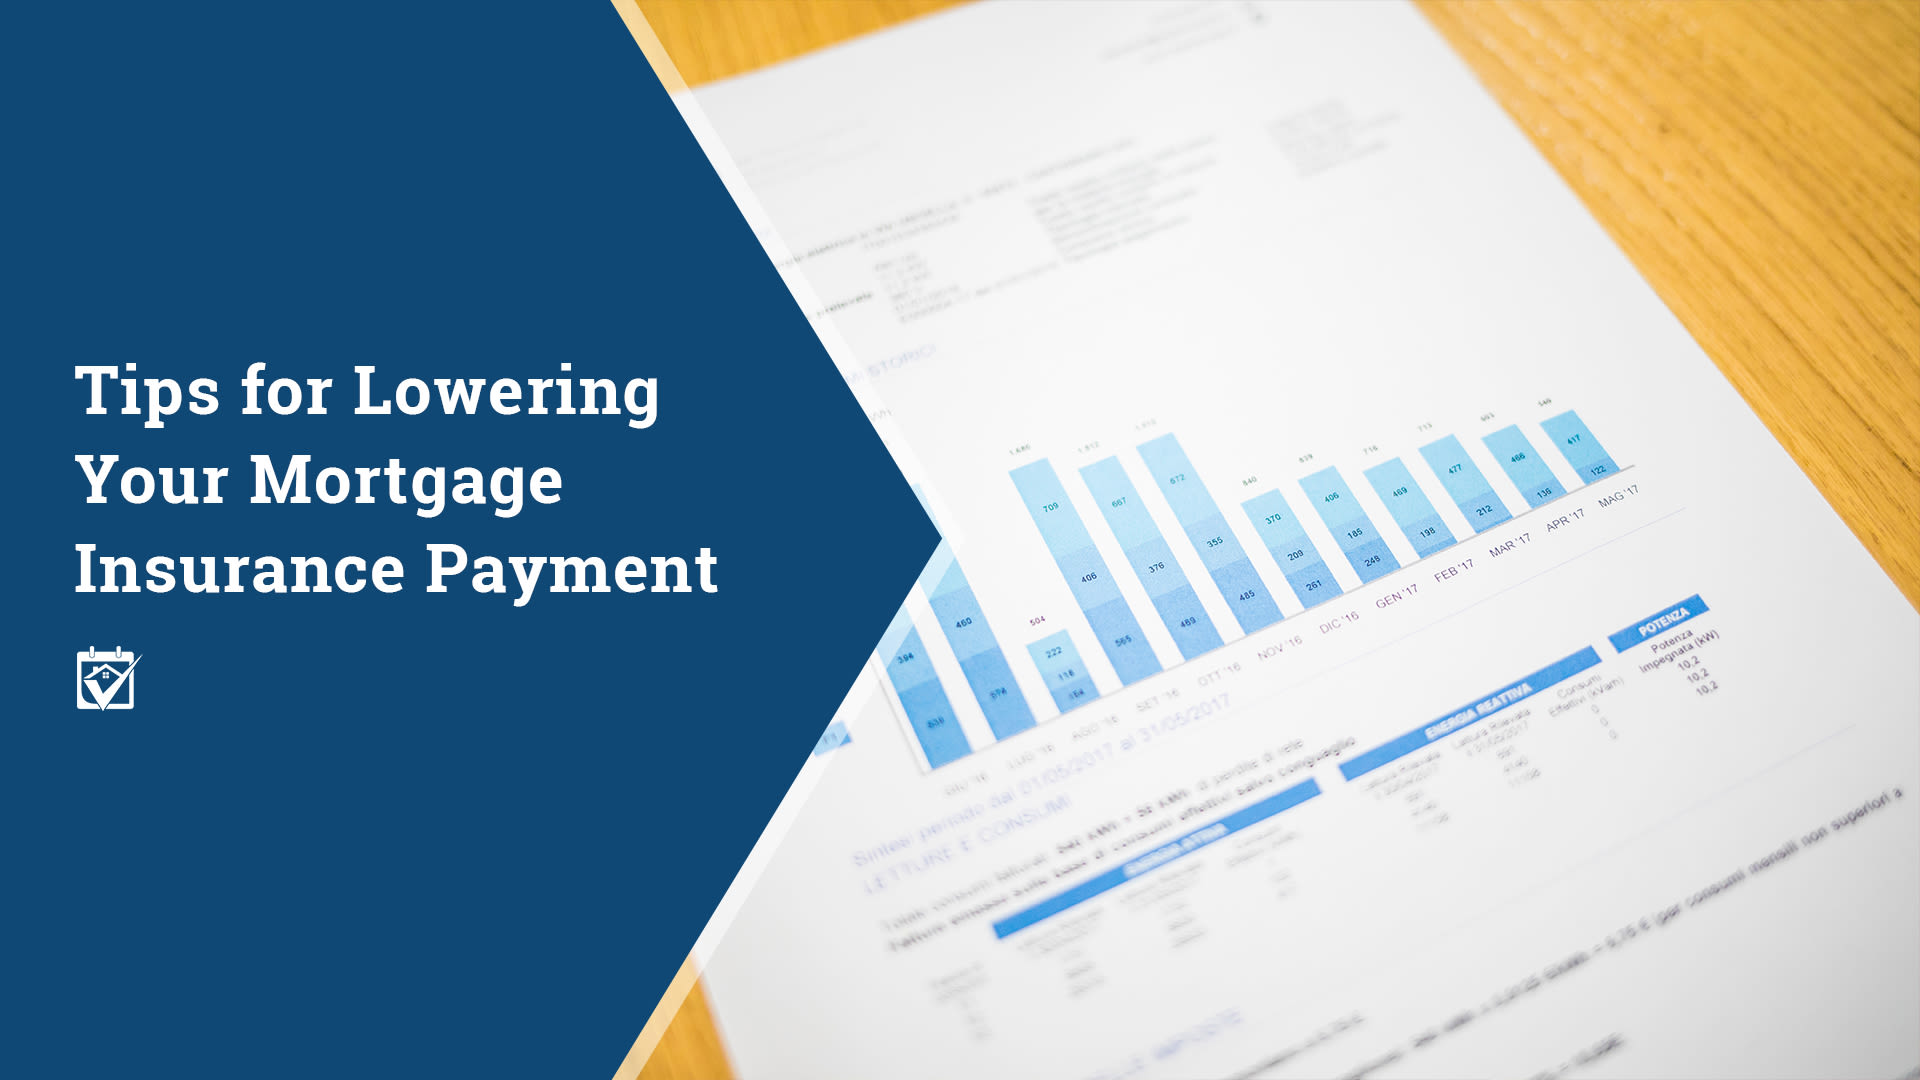 Tips for Lowering Your Mortgage Insurance Payment